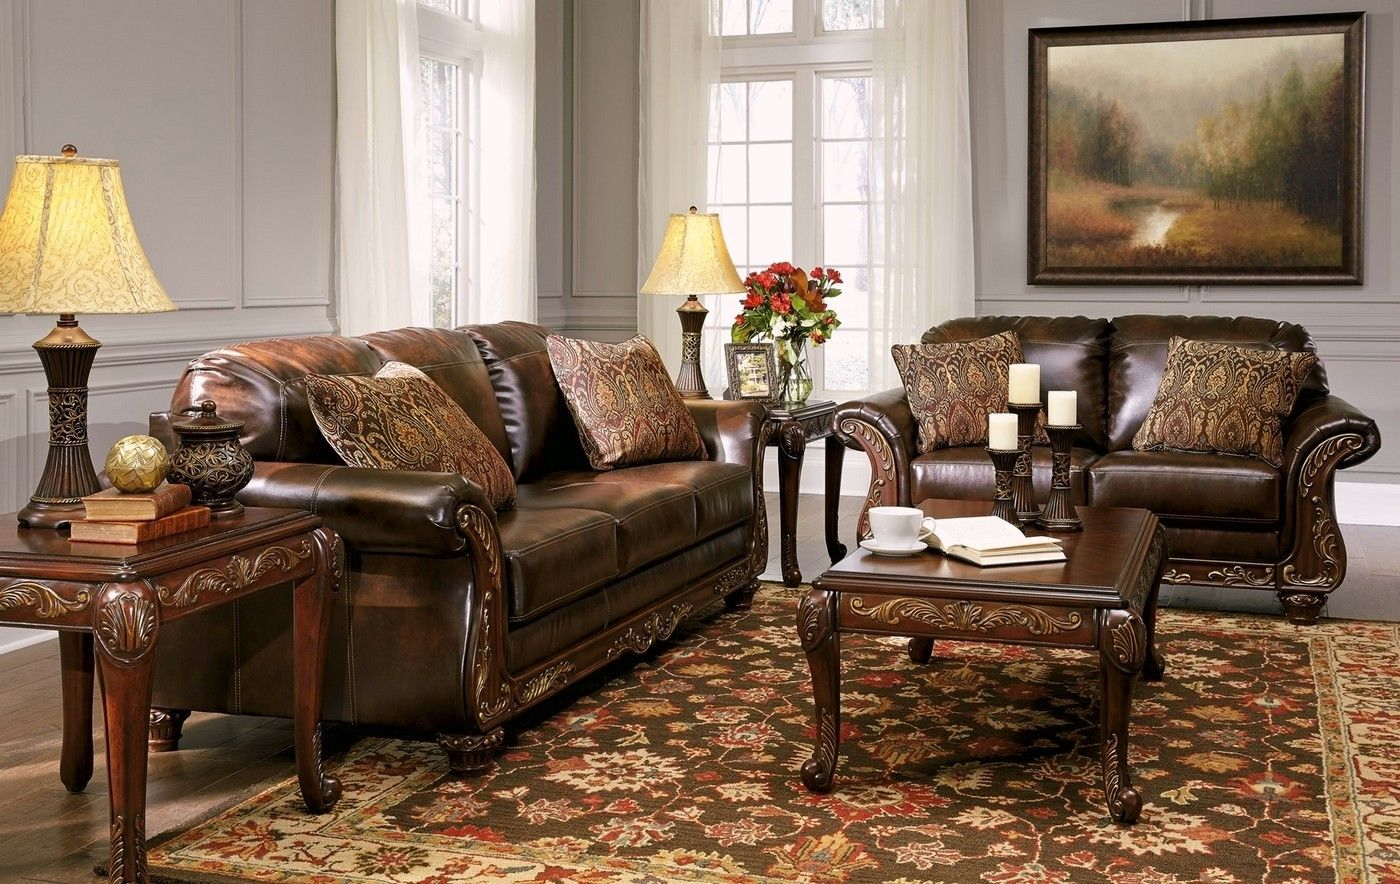 Vanceton brown leather traditional wood sofa loveseat for Traditional living room ideas with leather sofas